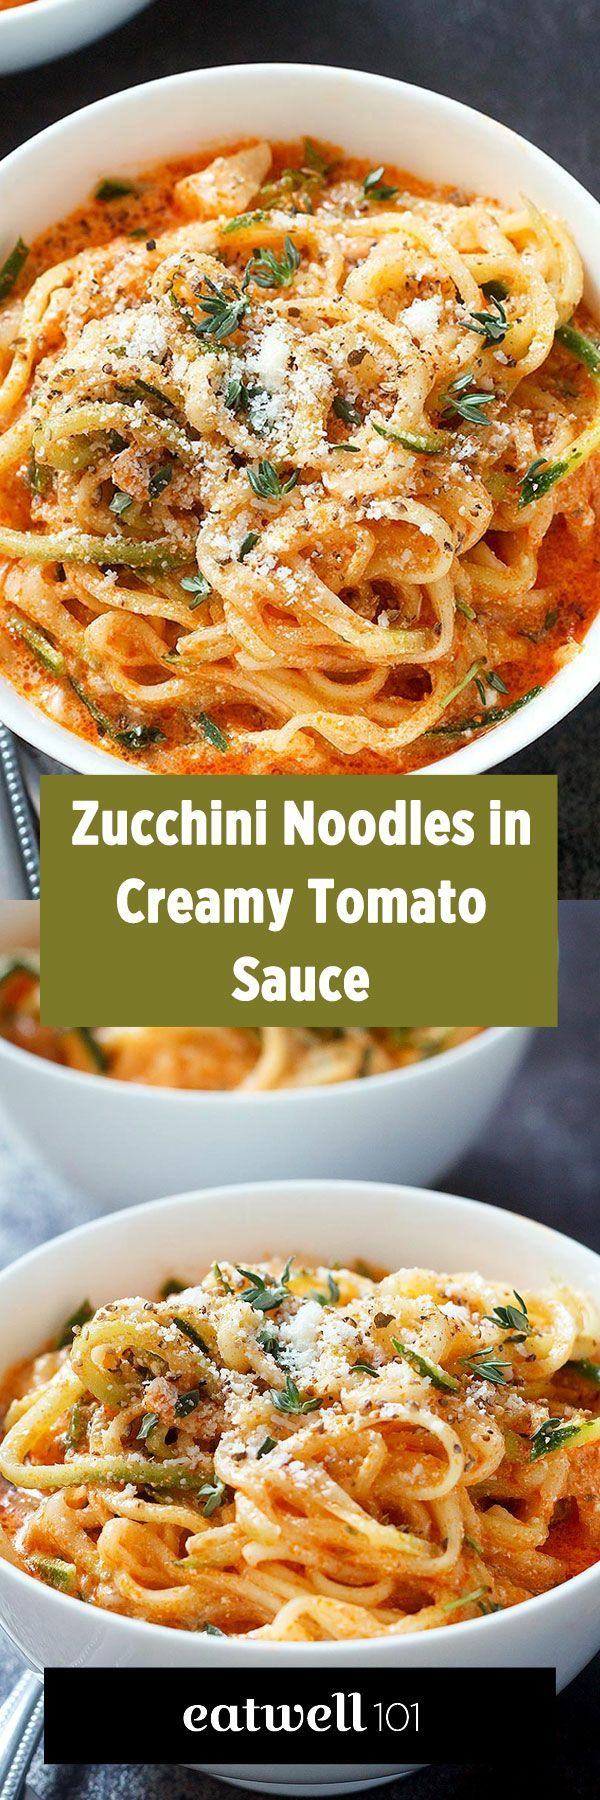 Zucchini Noodles in Creamy Tomato Sauce - 20mins LOW CARB comfort dinner!